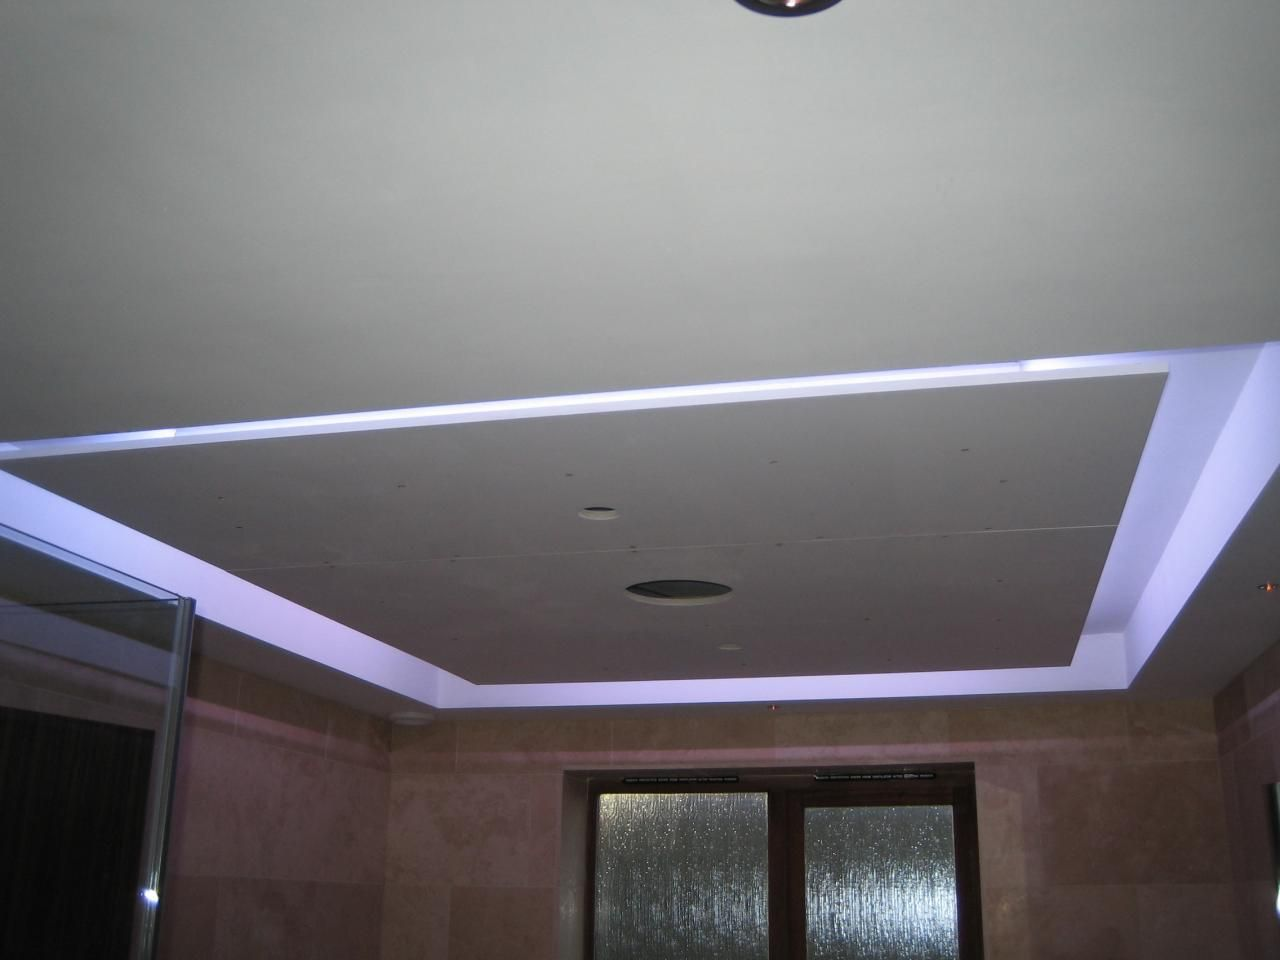 Drop Ceiling Lighting Led Lights Stripes Fluorescent Light Covers